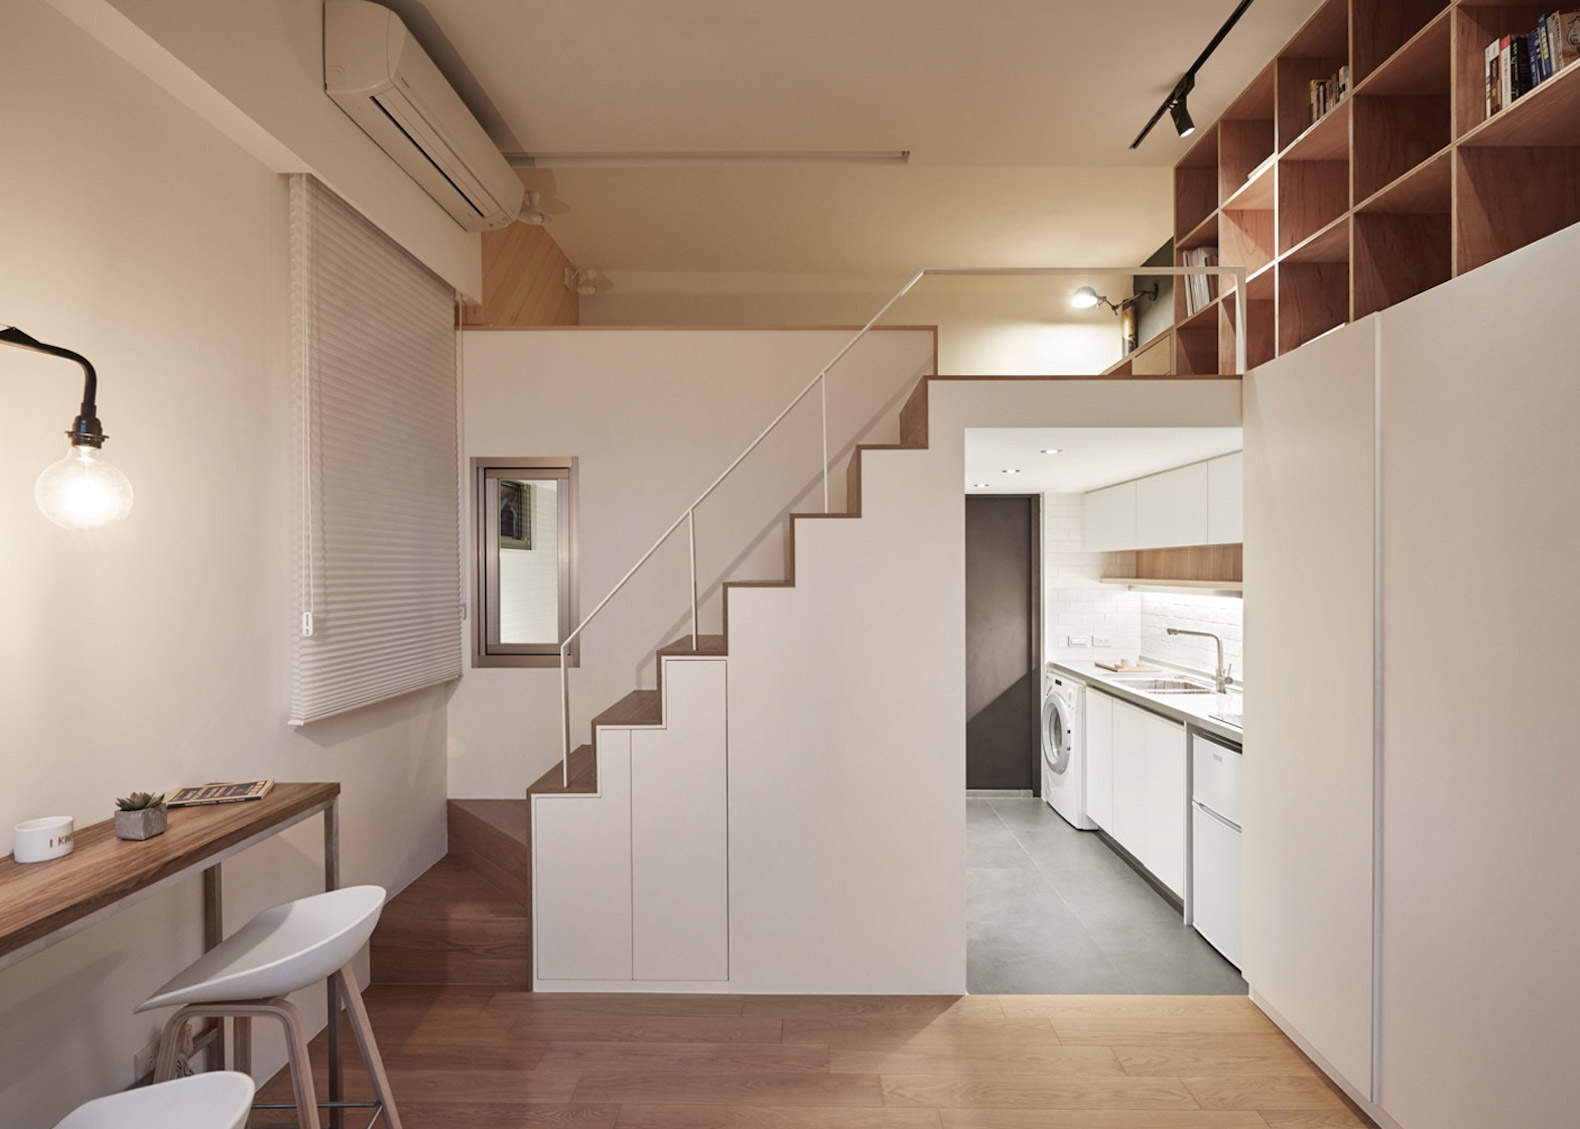 Smart Space Saving Design Transforms A Tiny Apartment In Taipei Into An Upscale Home